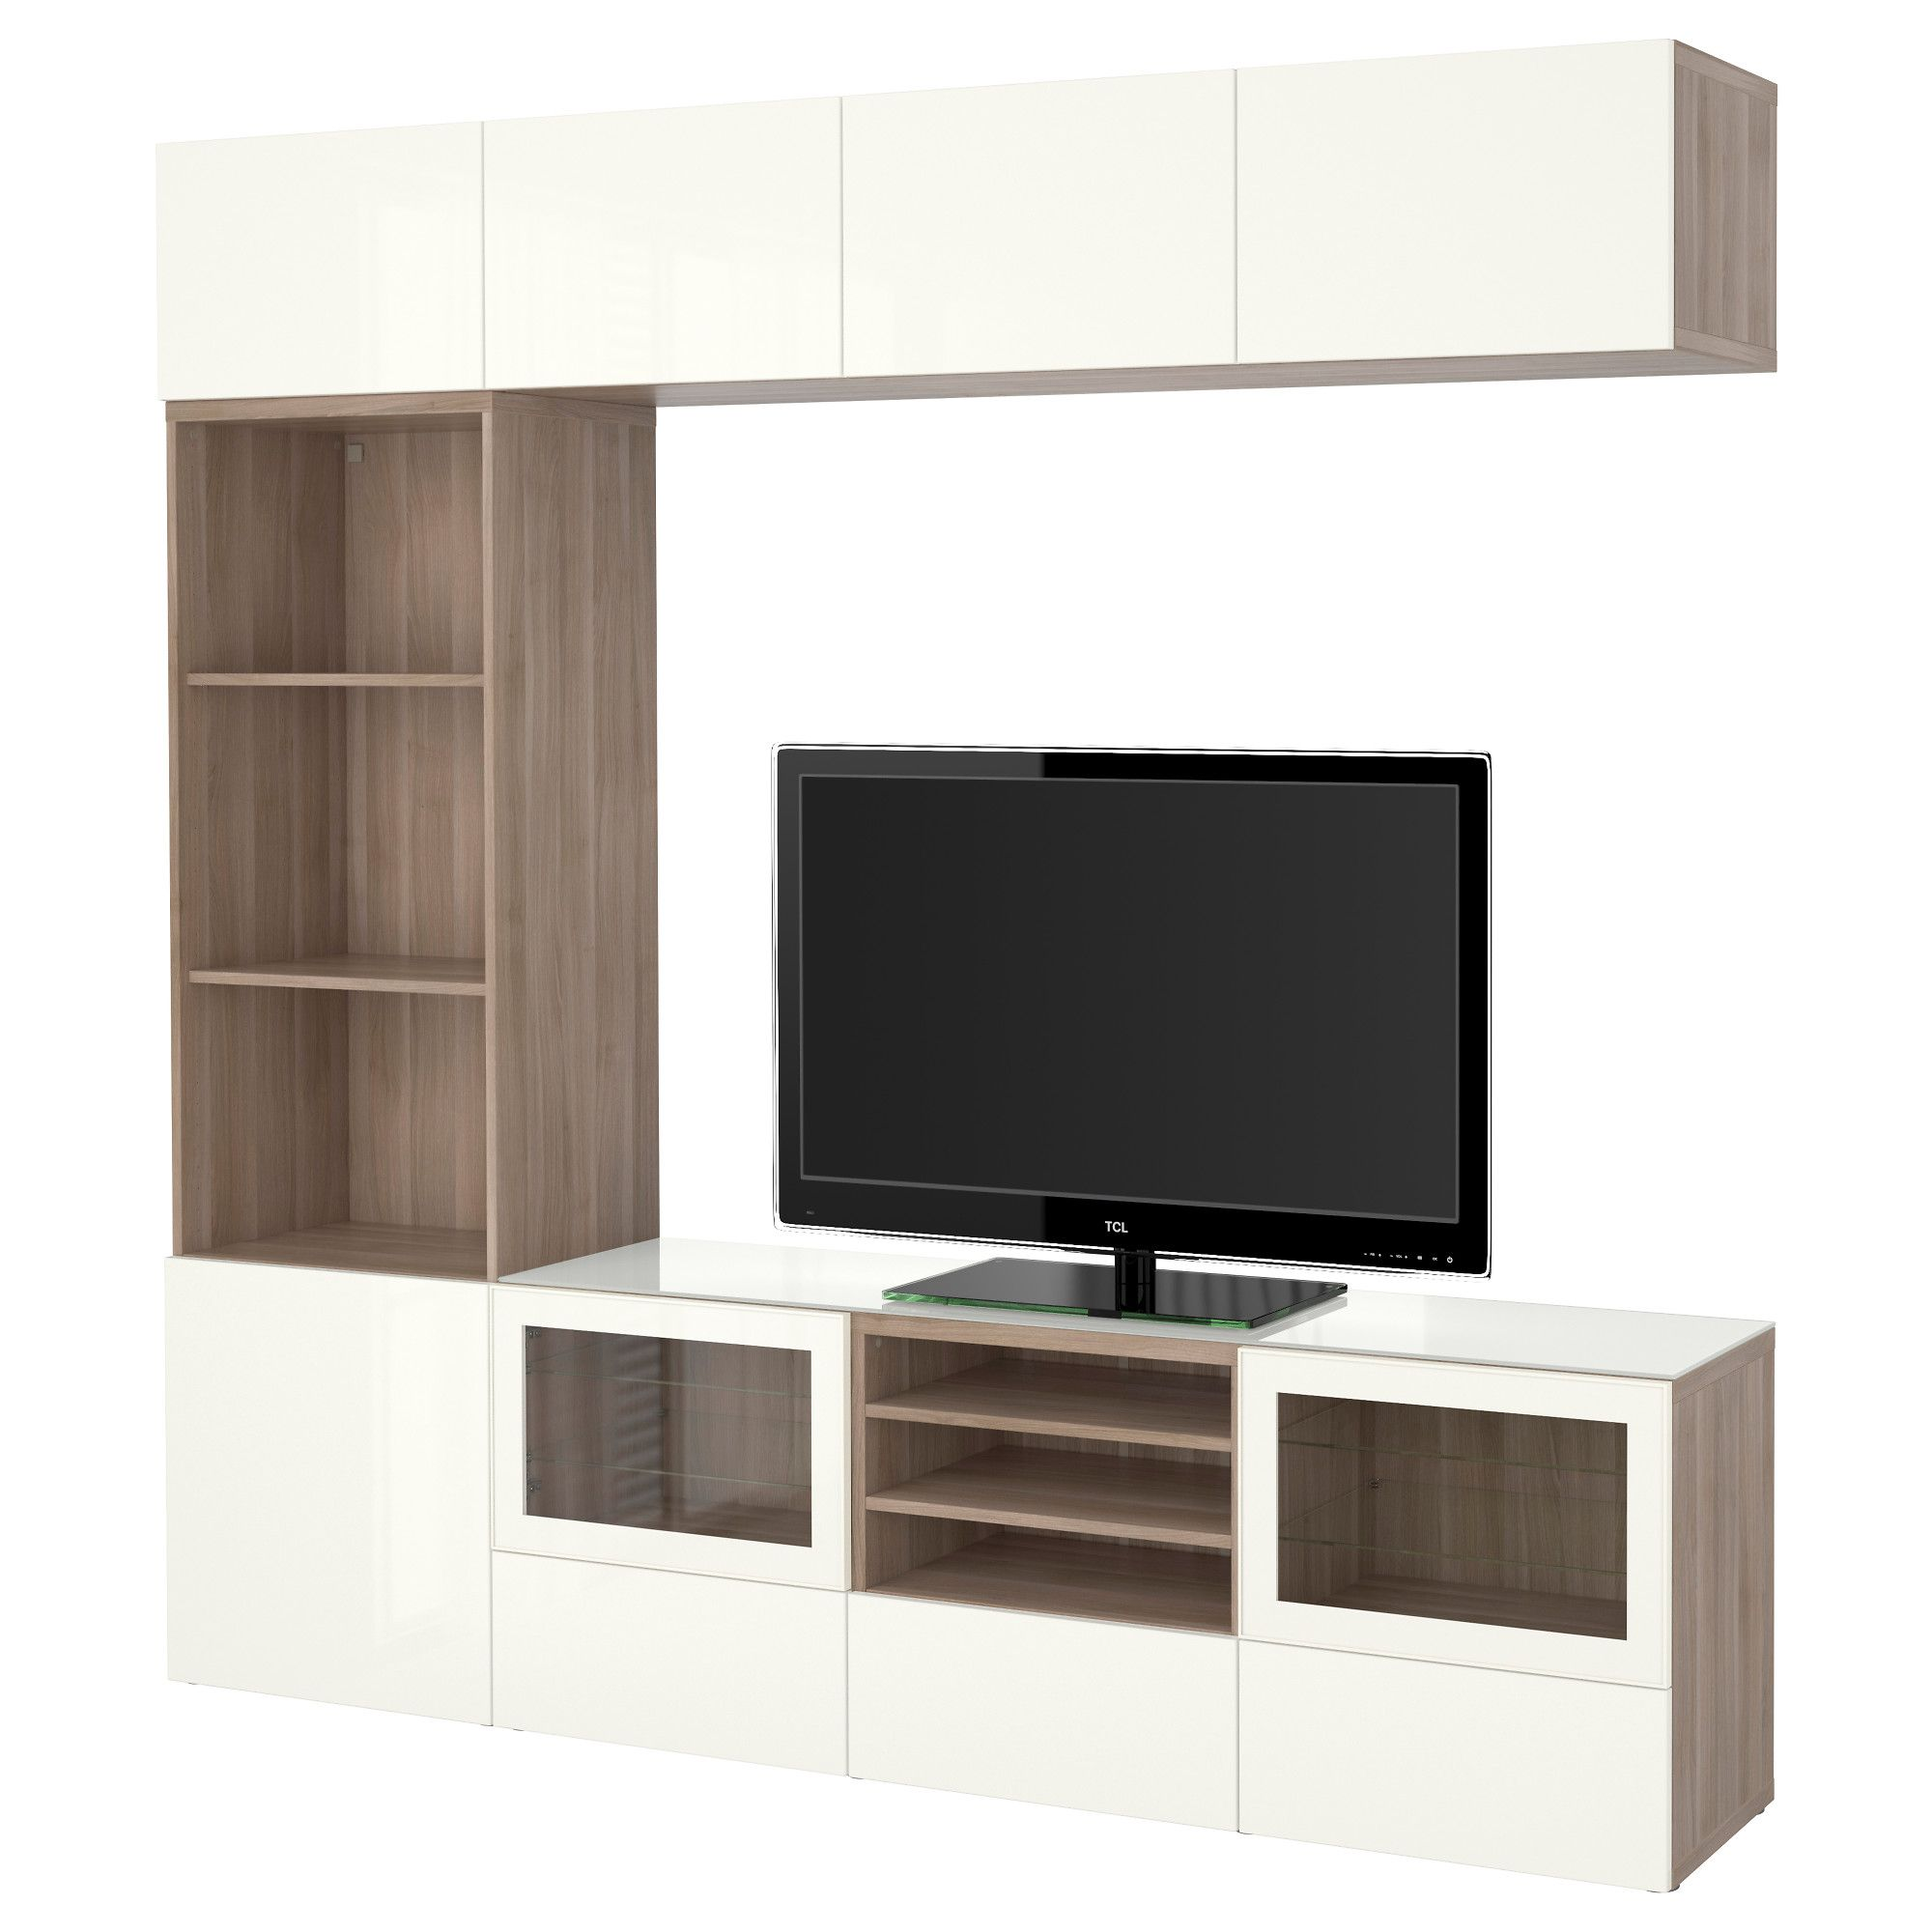 Ikea System Ikea BestÅ Tv Storage Combination Glass Doors Walnut